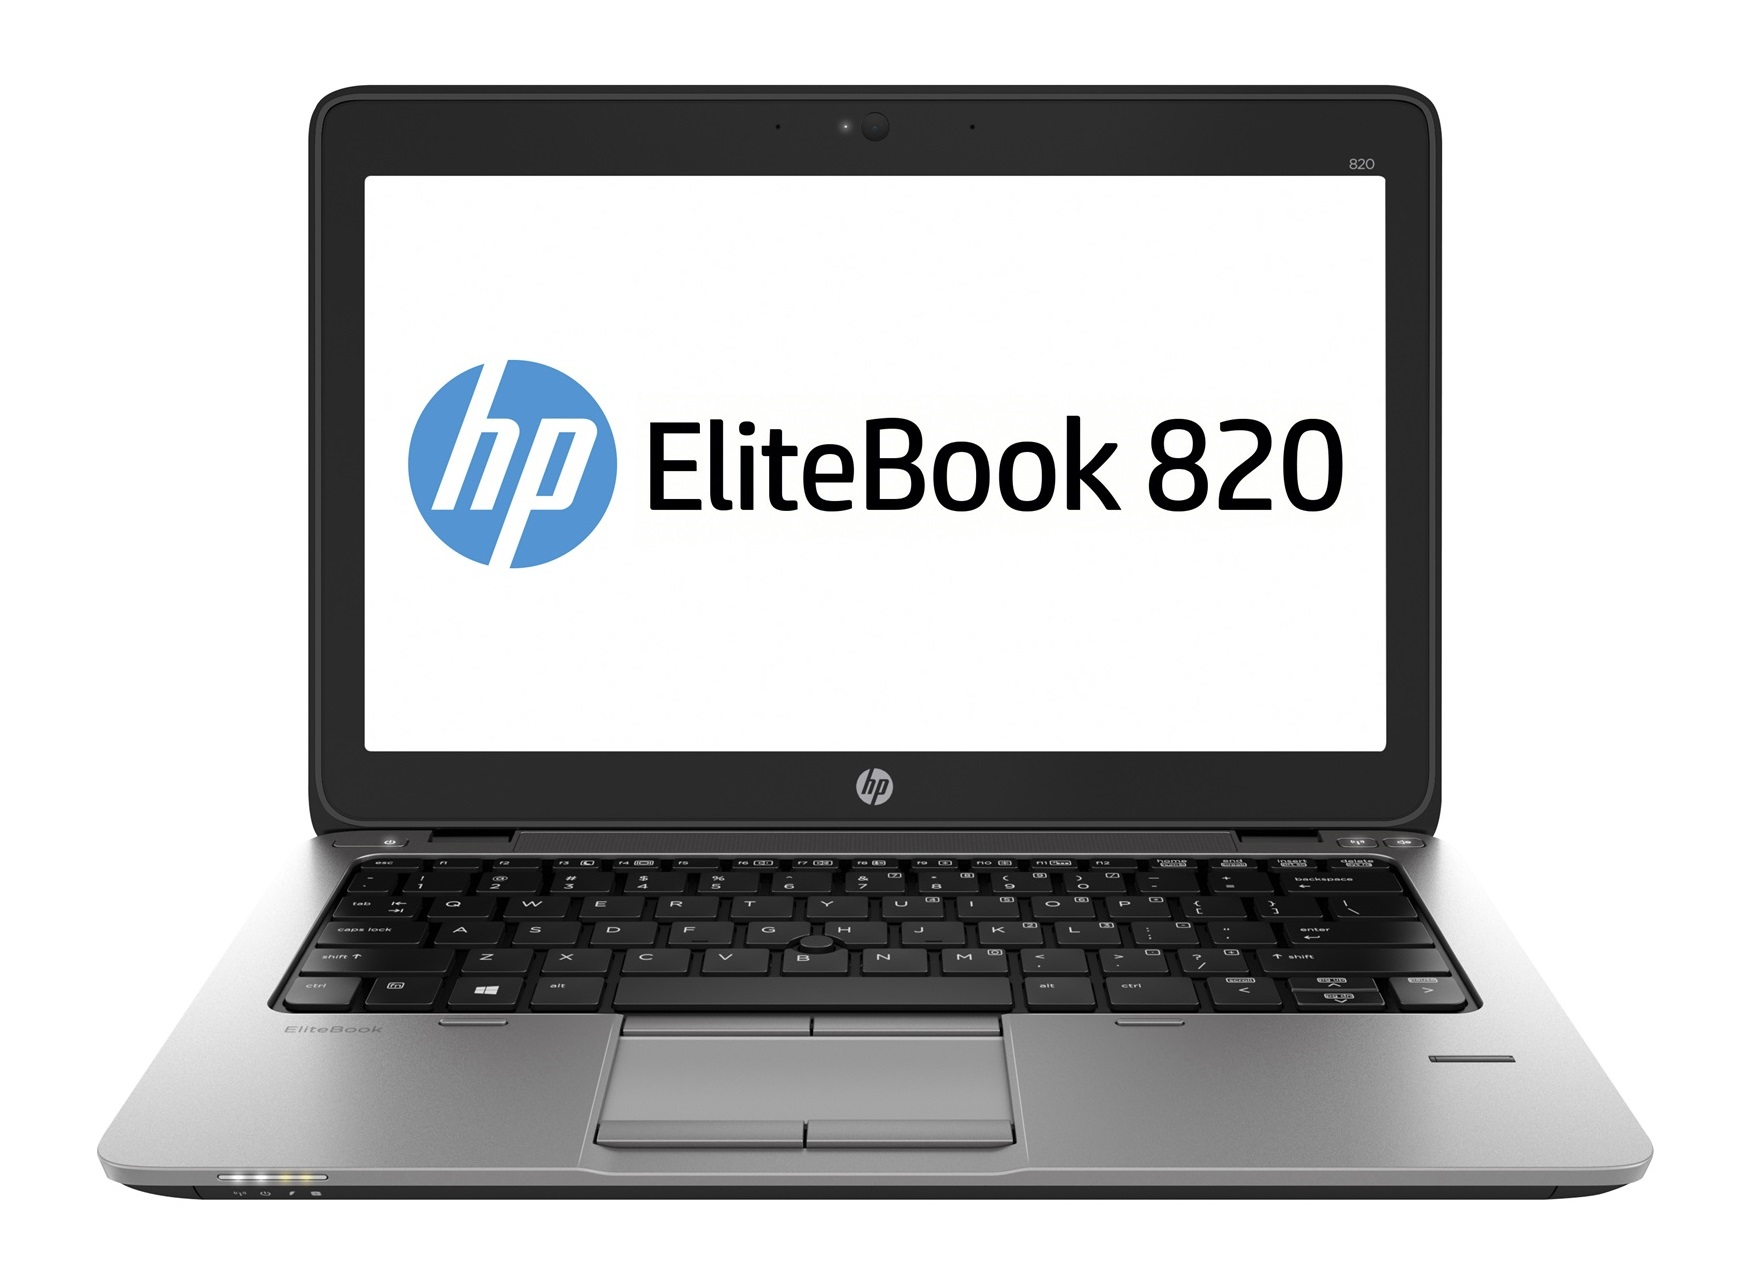 HP EliteBook 820 G1 Intel Core i5 1.9GHz 4GB RAM 180GB SSD Windows 10 Professional